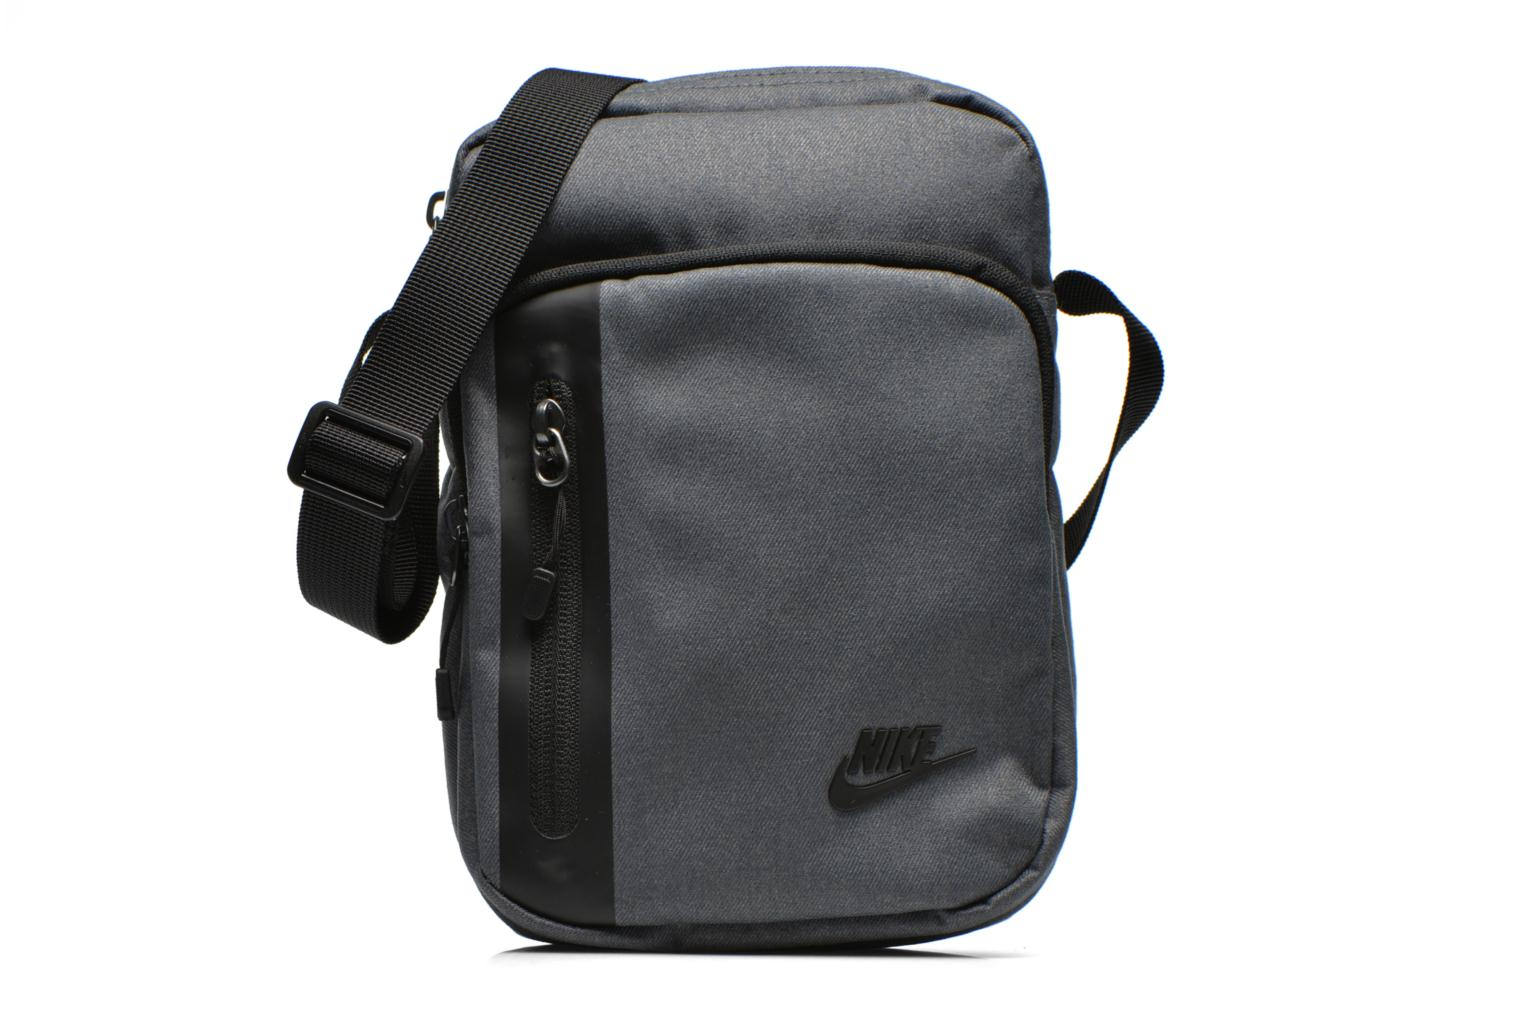 7662946ace0 ... premium selection 5ca25 44ce0 Mens bags Nike Nike Tech Small Items Bag  Grey detailed view Pair ...